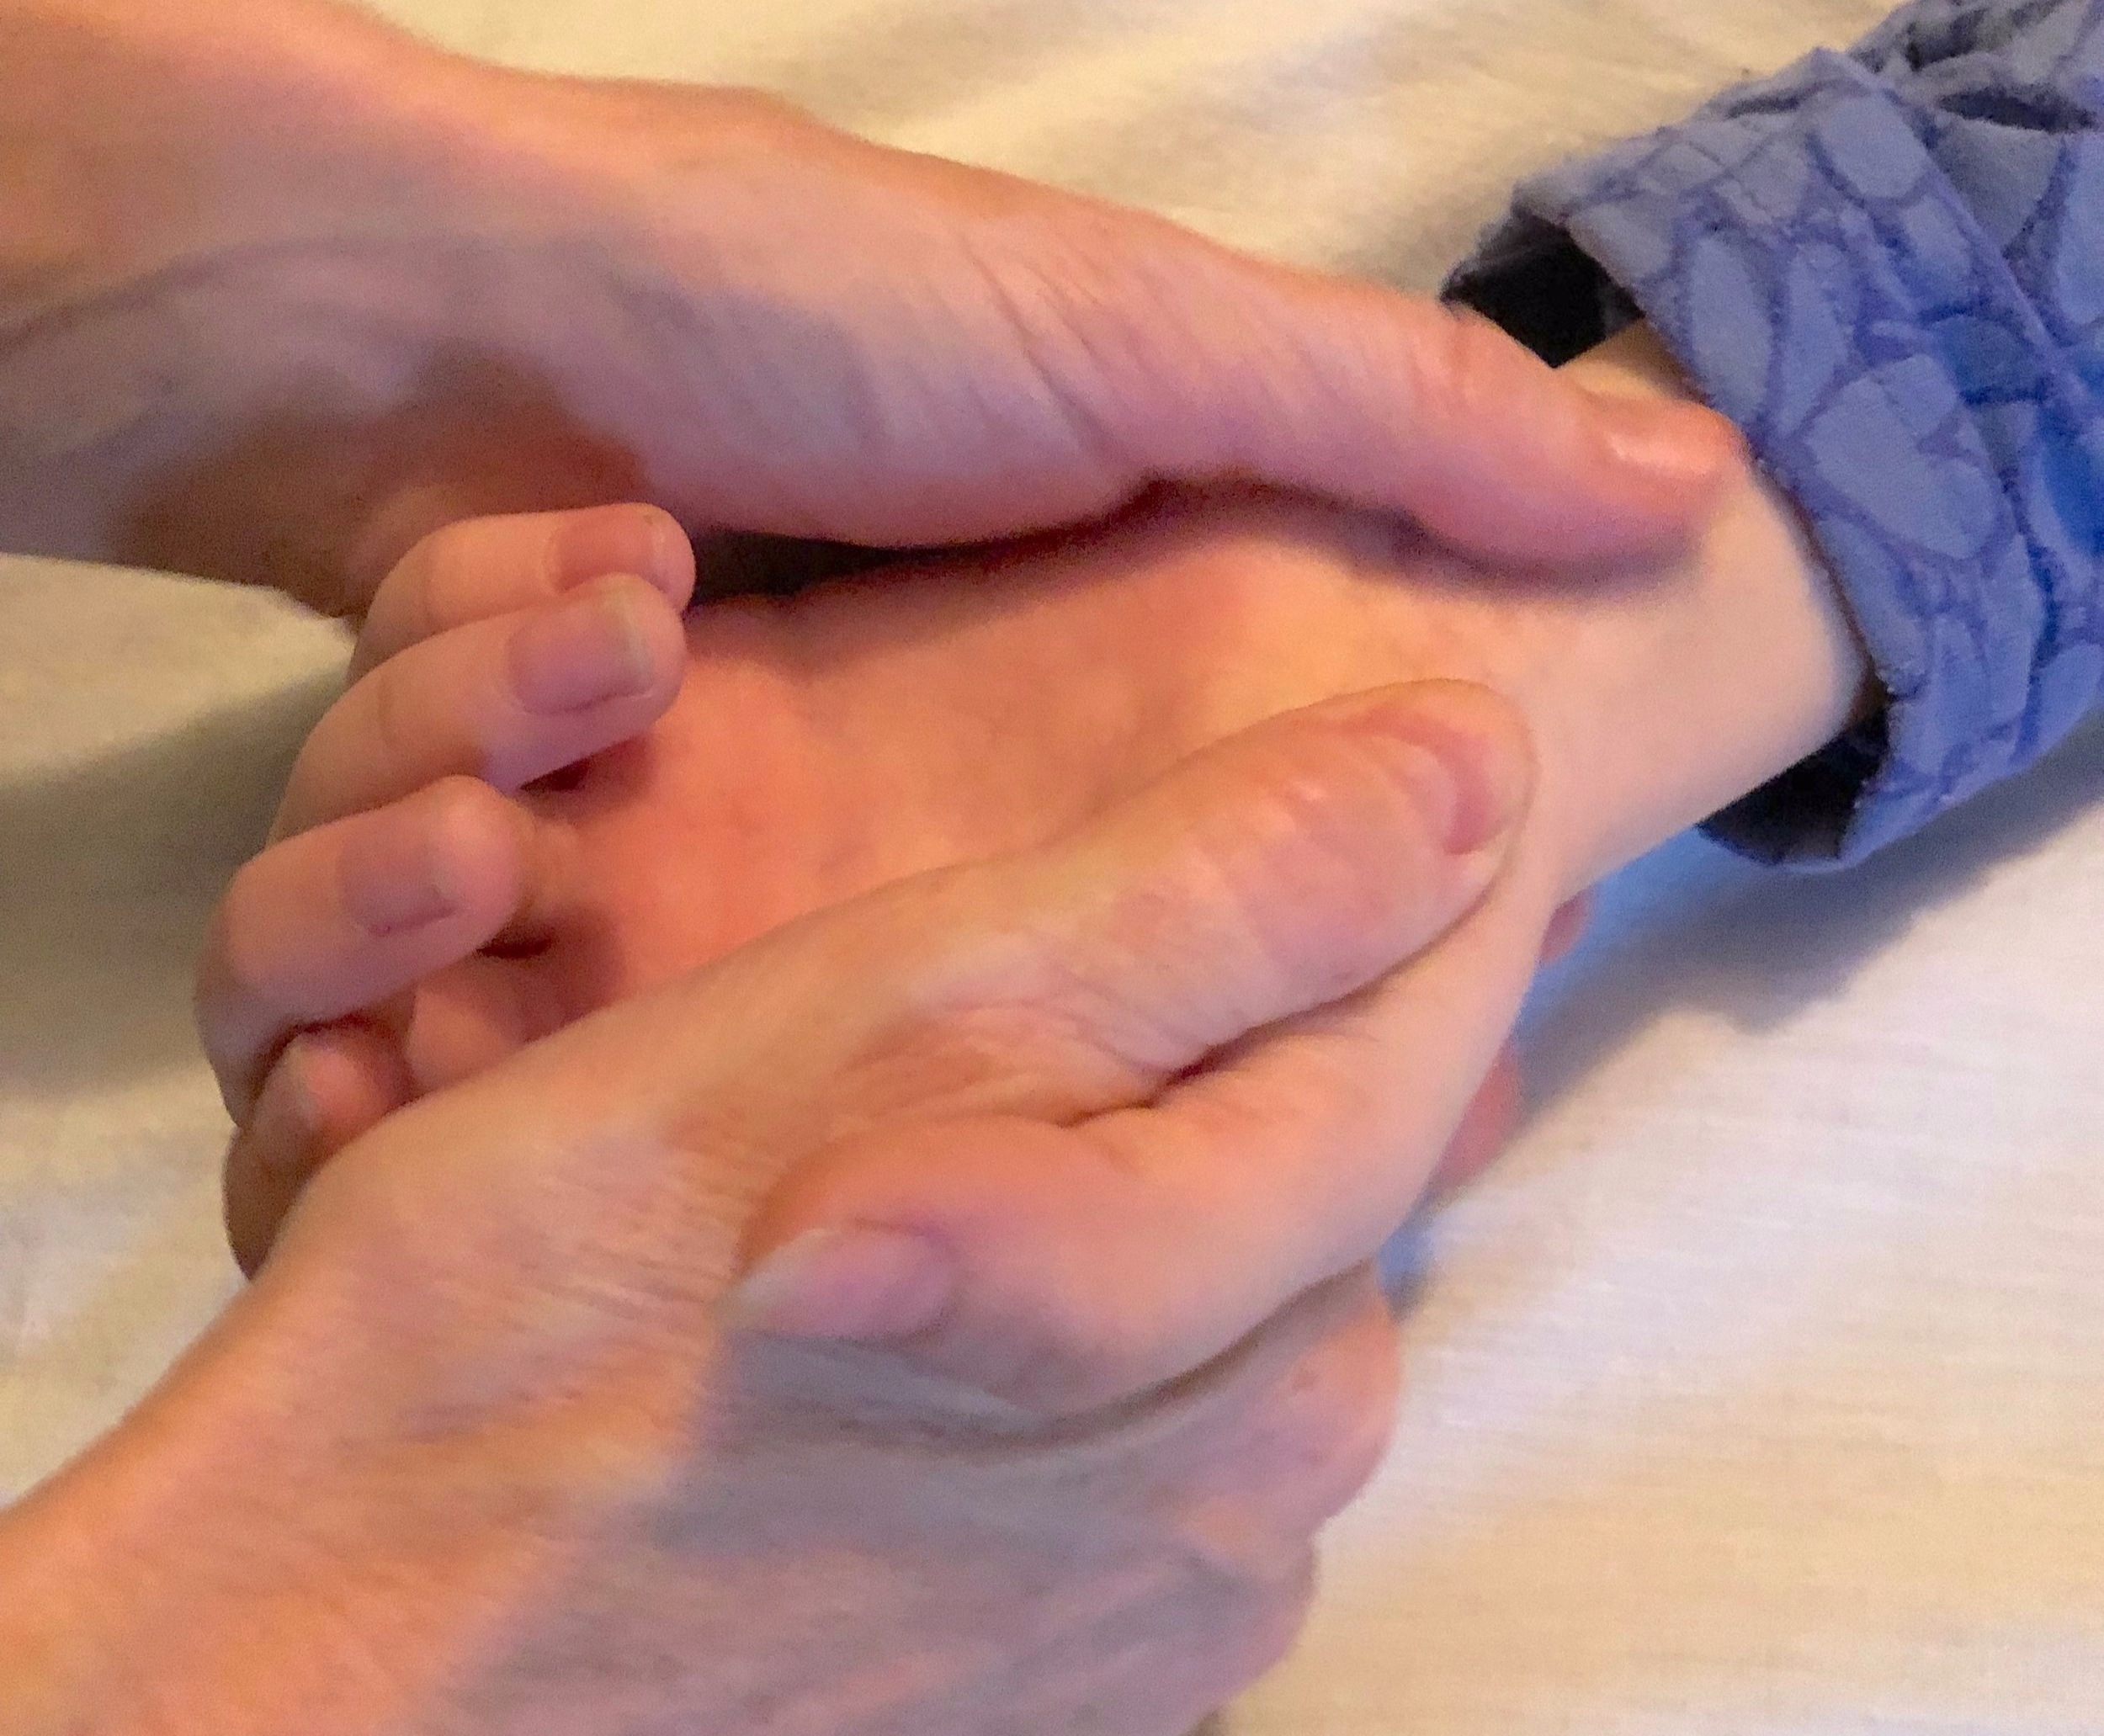 Shiatsu for Children(8-12) - I love working with children and am grateful when I have the opportunity to help a child feel better. We tend to think of children's lives as being carefree, but often that is not the case. Children can be living in homes where there is a lot of tension and stress, they may experience difficulties at school, anxiety trying to navigate their social groups, and their bodies are developing so quickly they often have general aches and pains. Shiatsu is an excellent tool to help soothe and quiet a child's mind while also easing the physical discomfort they're experiencing.